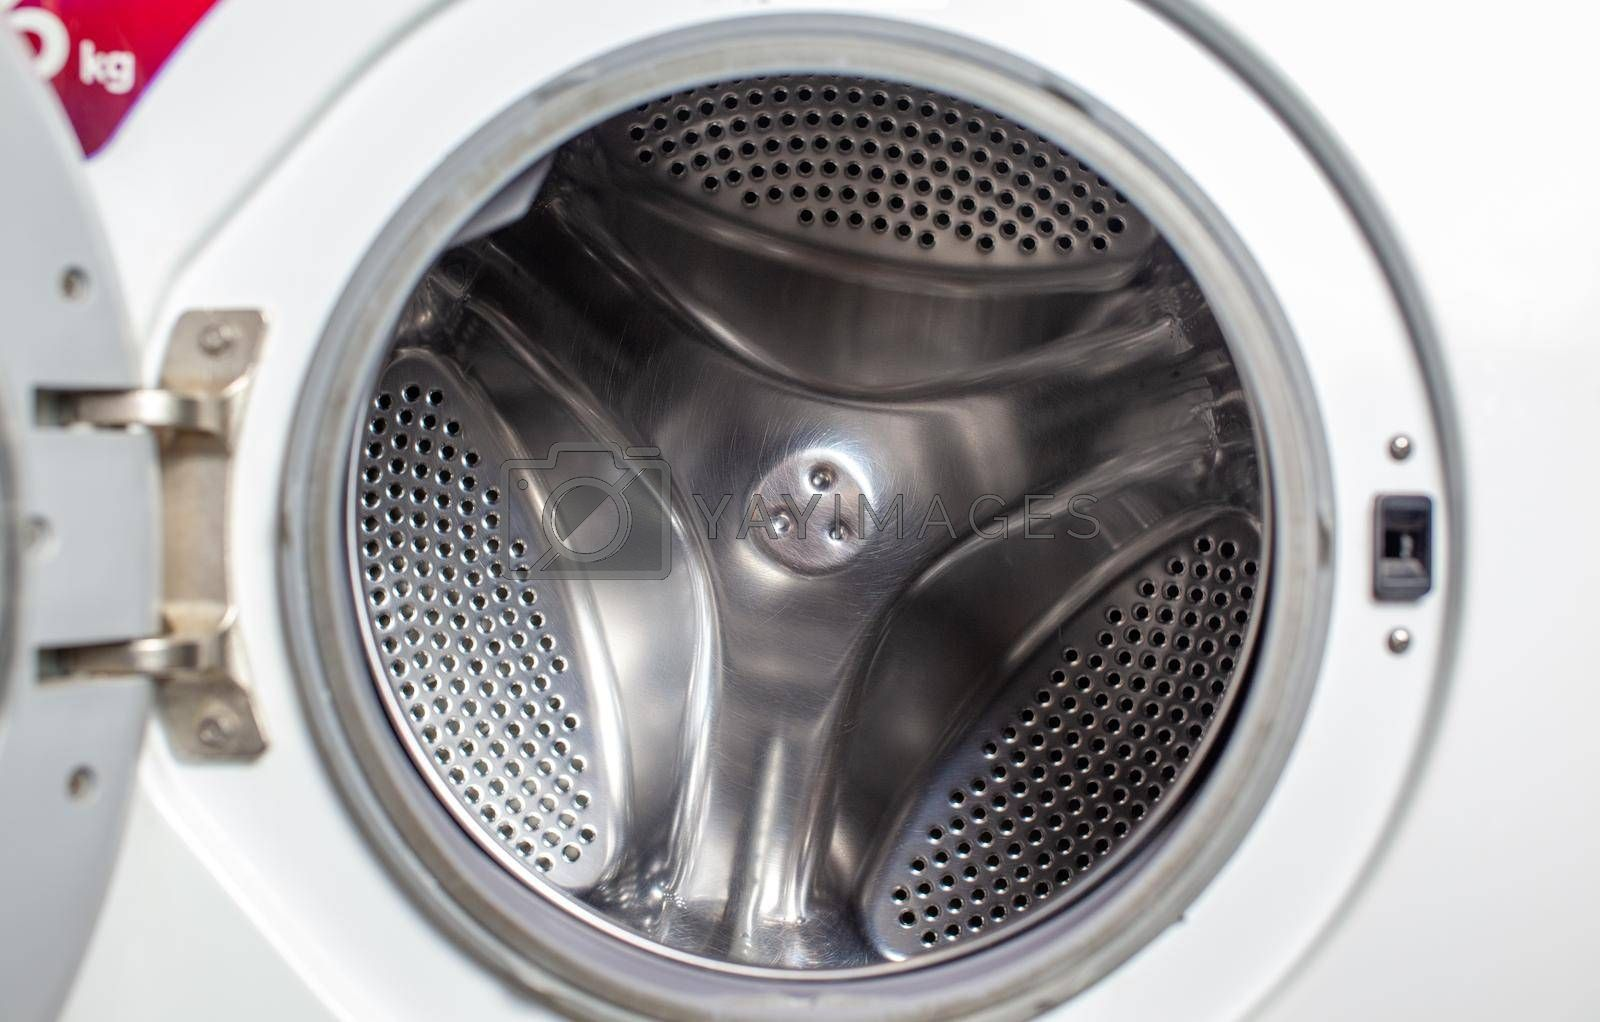 Drum of washing machine dry and clean close-up. Washing Dryer Machine inside view of a drum.